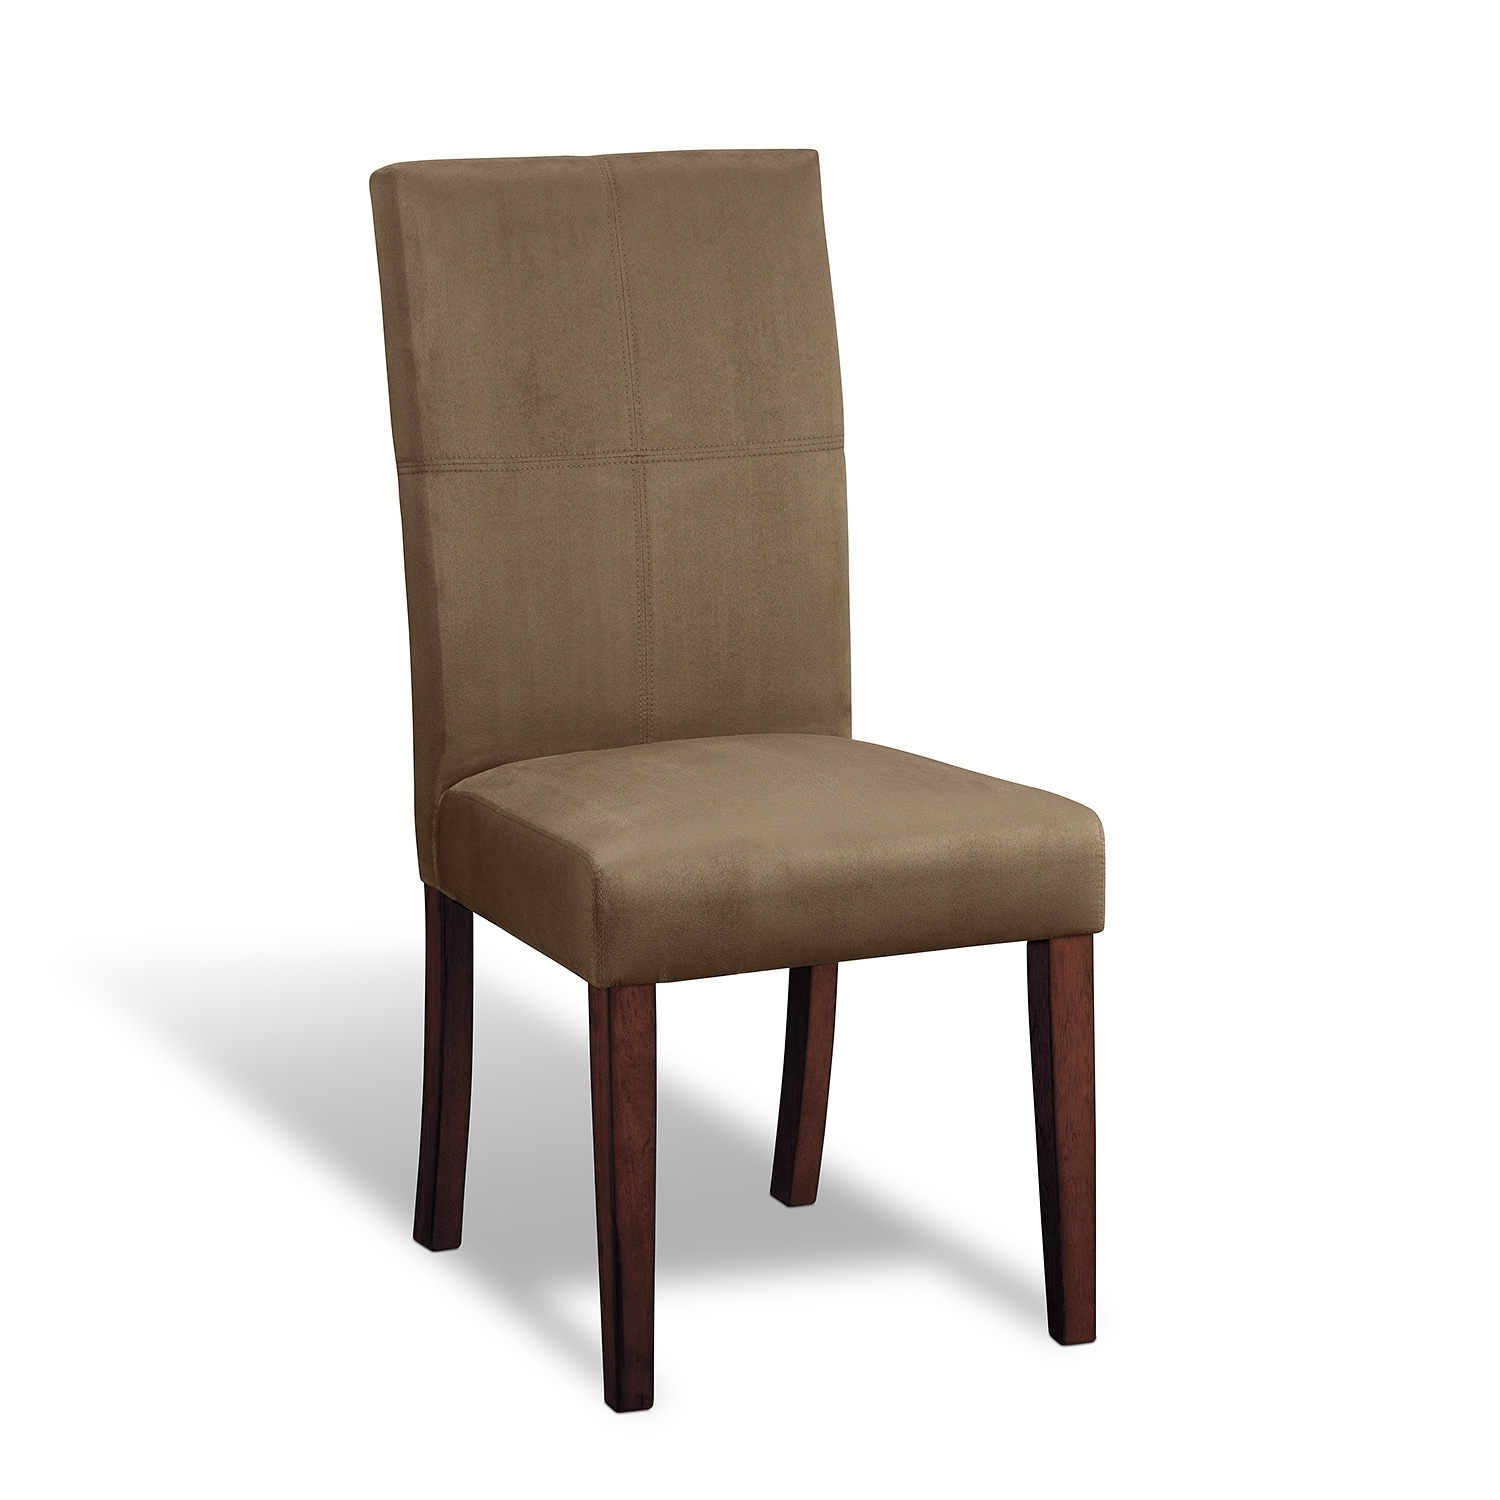 Cornerstone Dining Room Chair Value City Furniture : 274957 from valuecity.com size 1500 x 1500 jpeg 135kB